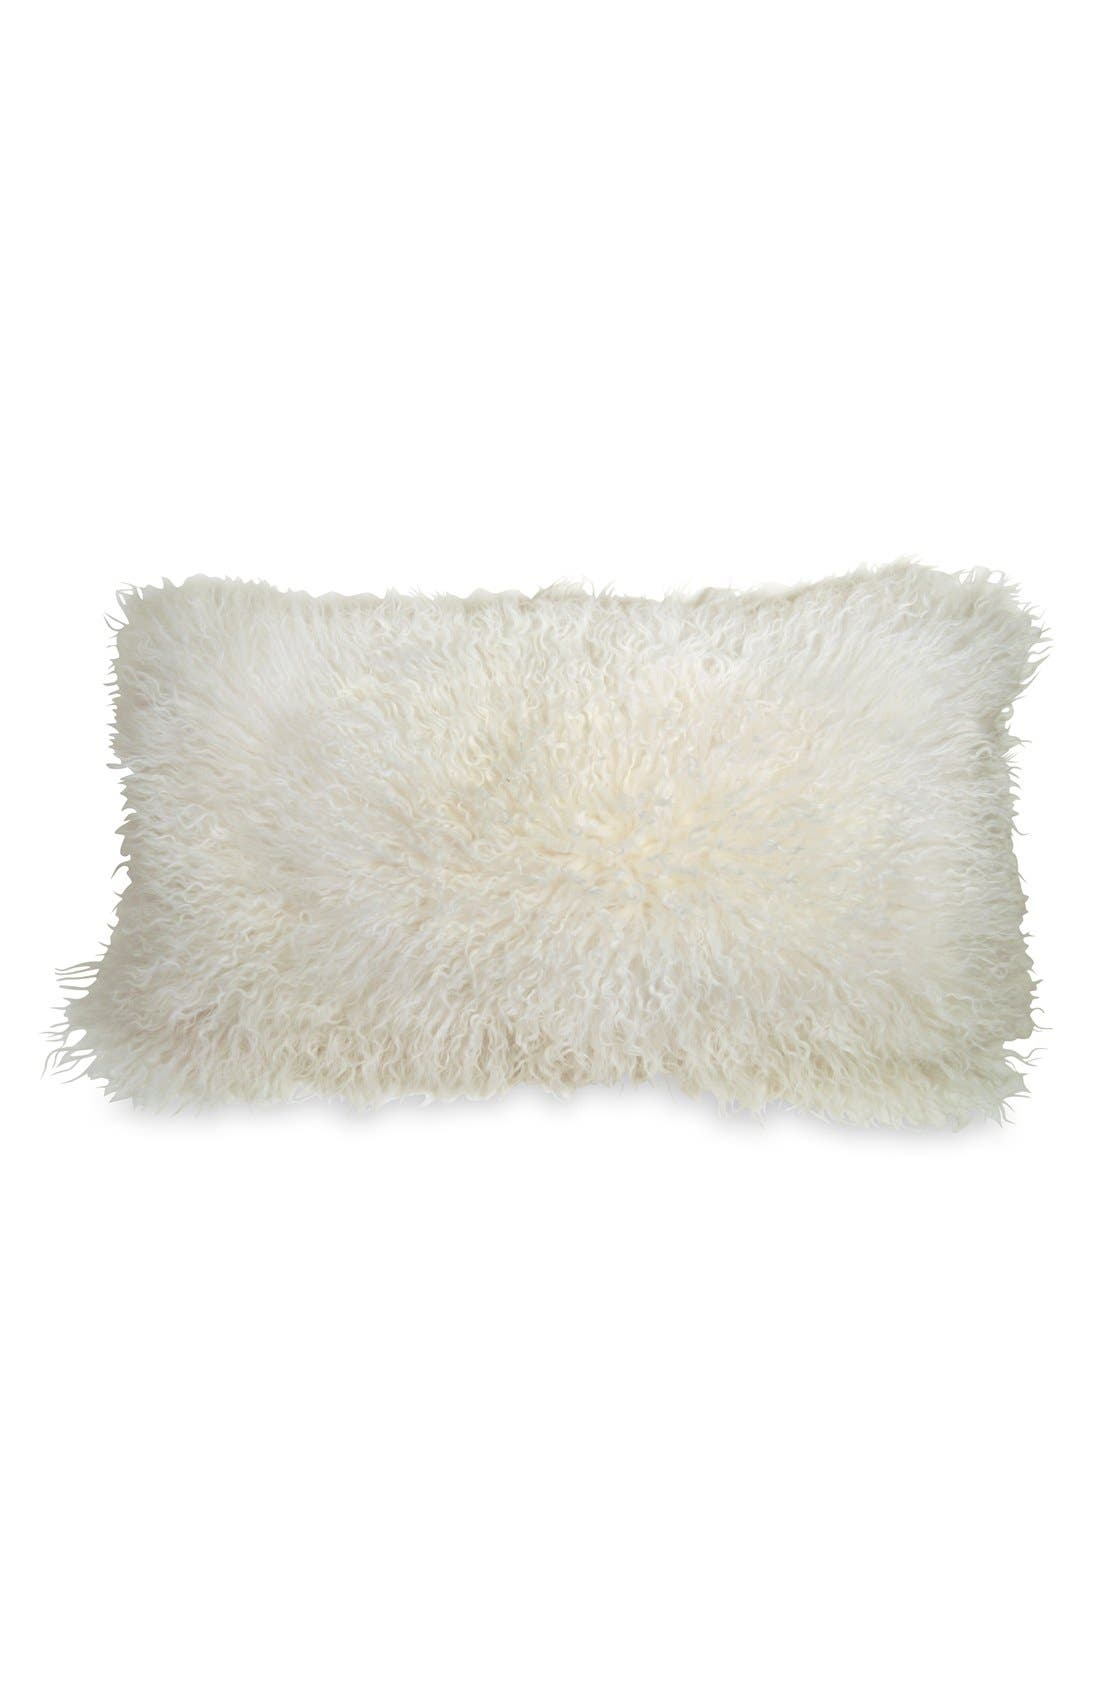 Donna Karan Collection Moonscape Flokati Genuine Sheepskin Pillow,                             Main thumbnail 1, color,                             900